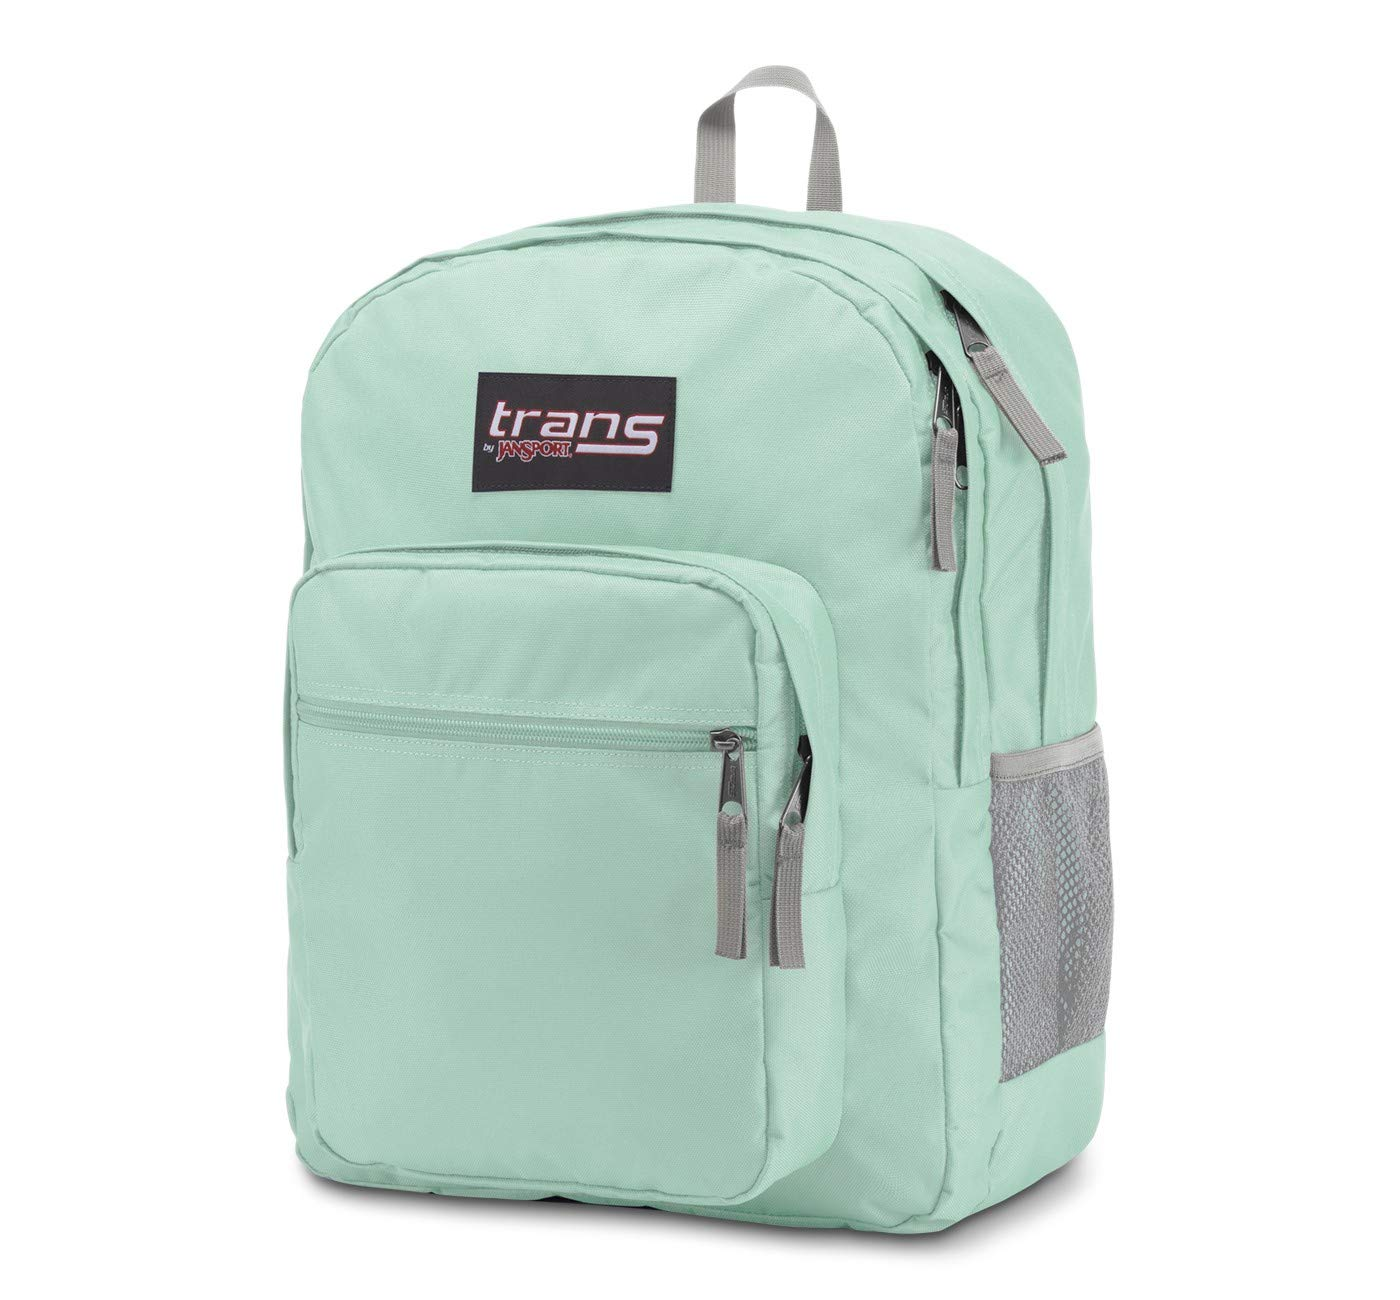 0ae4a44ac Amazon.com: Trans by JanSport 17